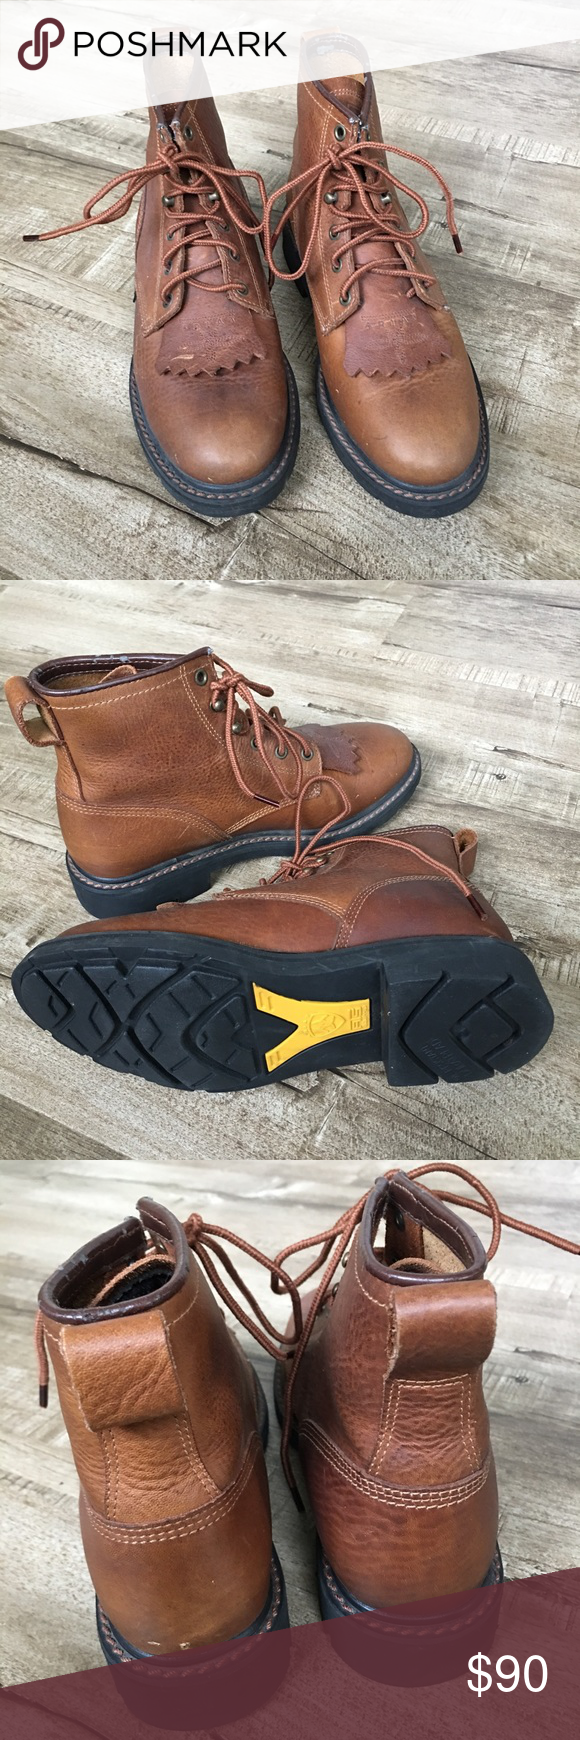 New Ariat Leather Western Barn Paddock Boots 7.5 | Boots ...